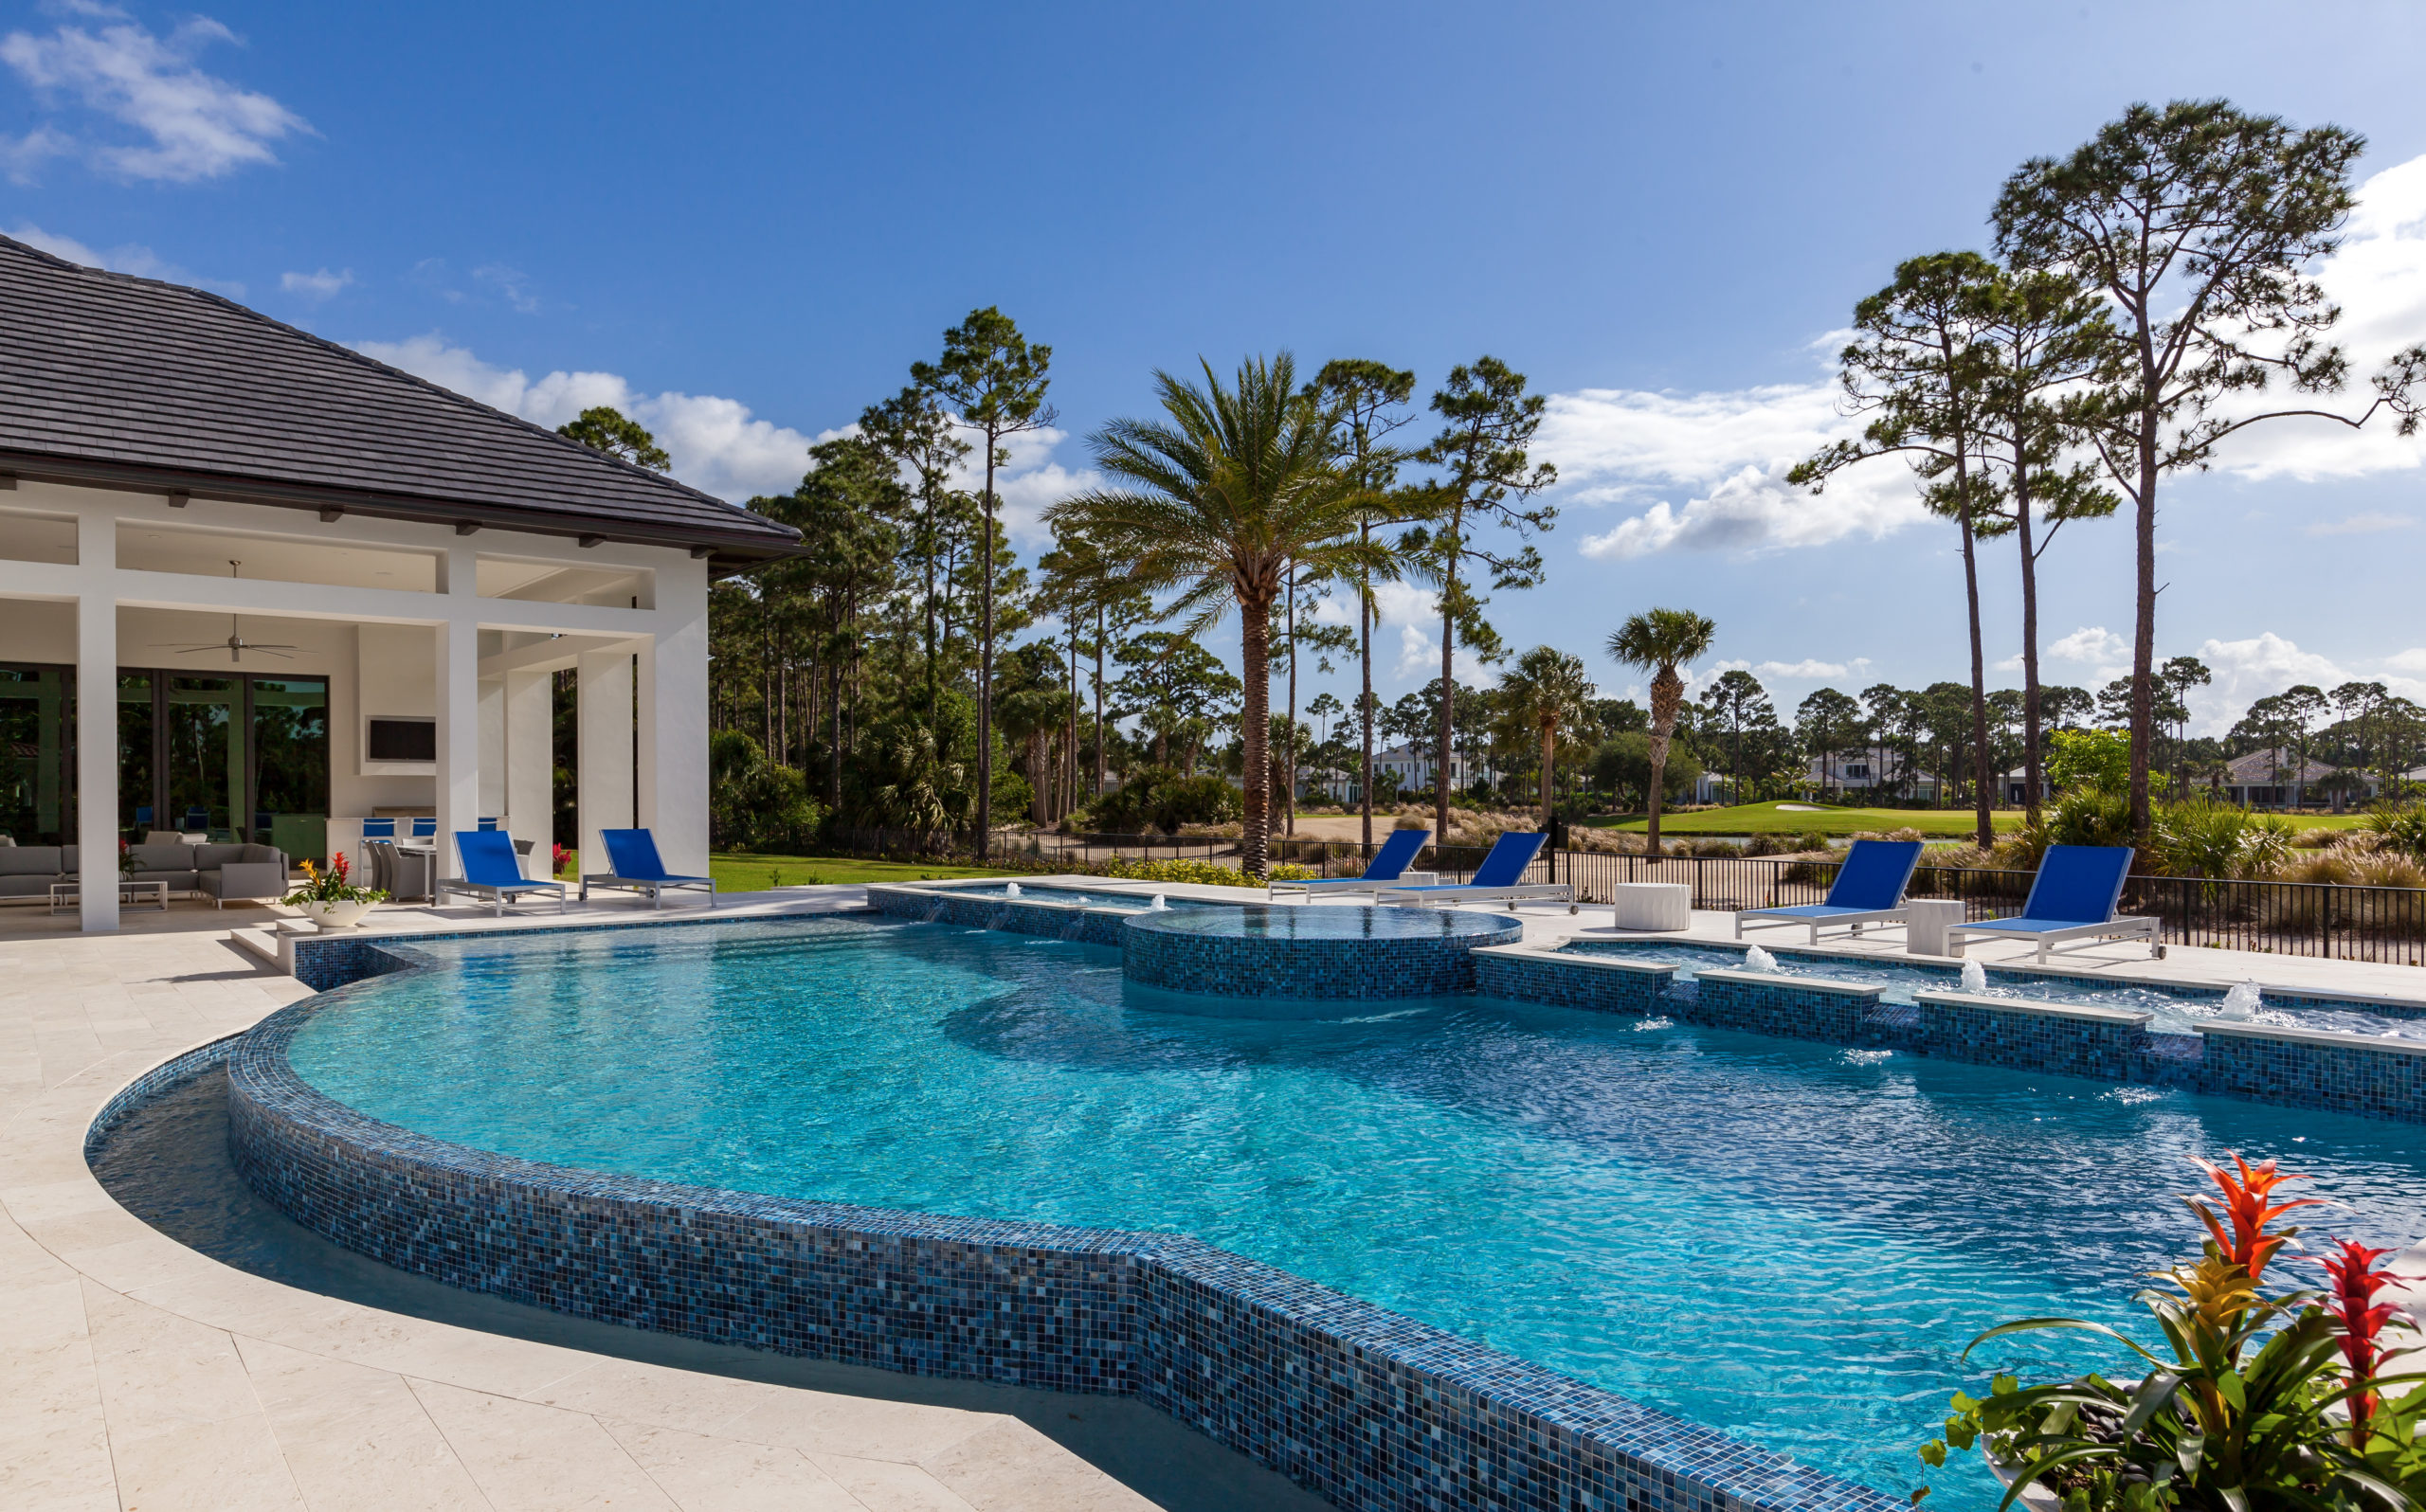 rhr pools of jupiter fl large pool with infinity edge